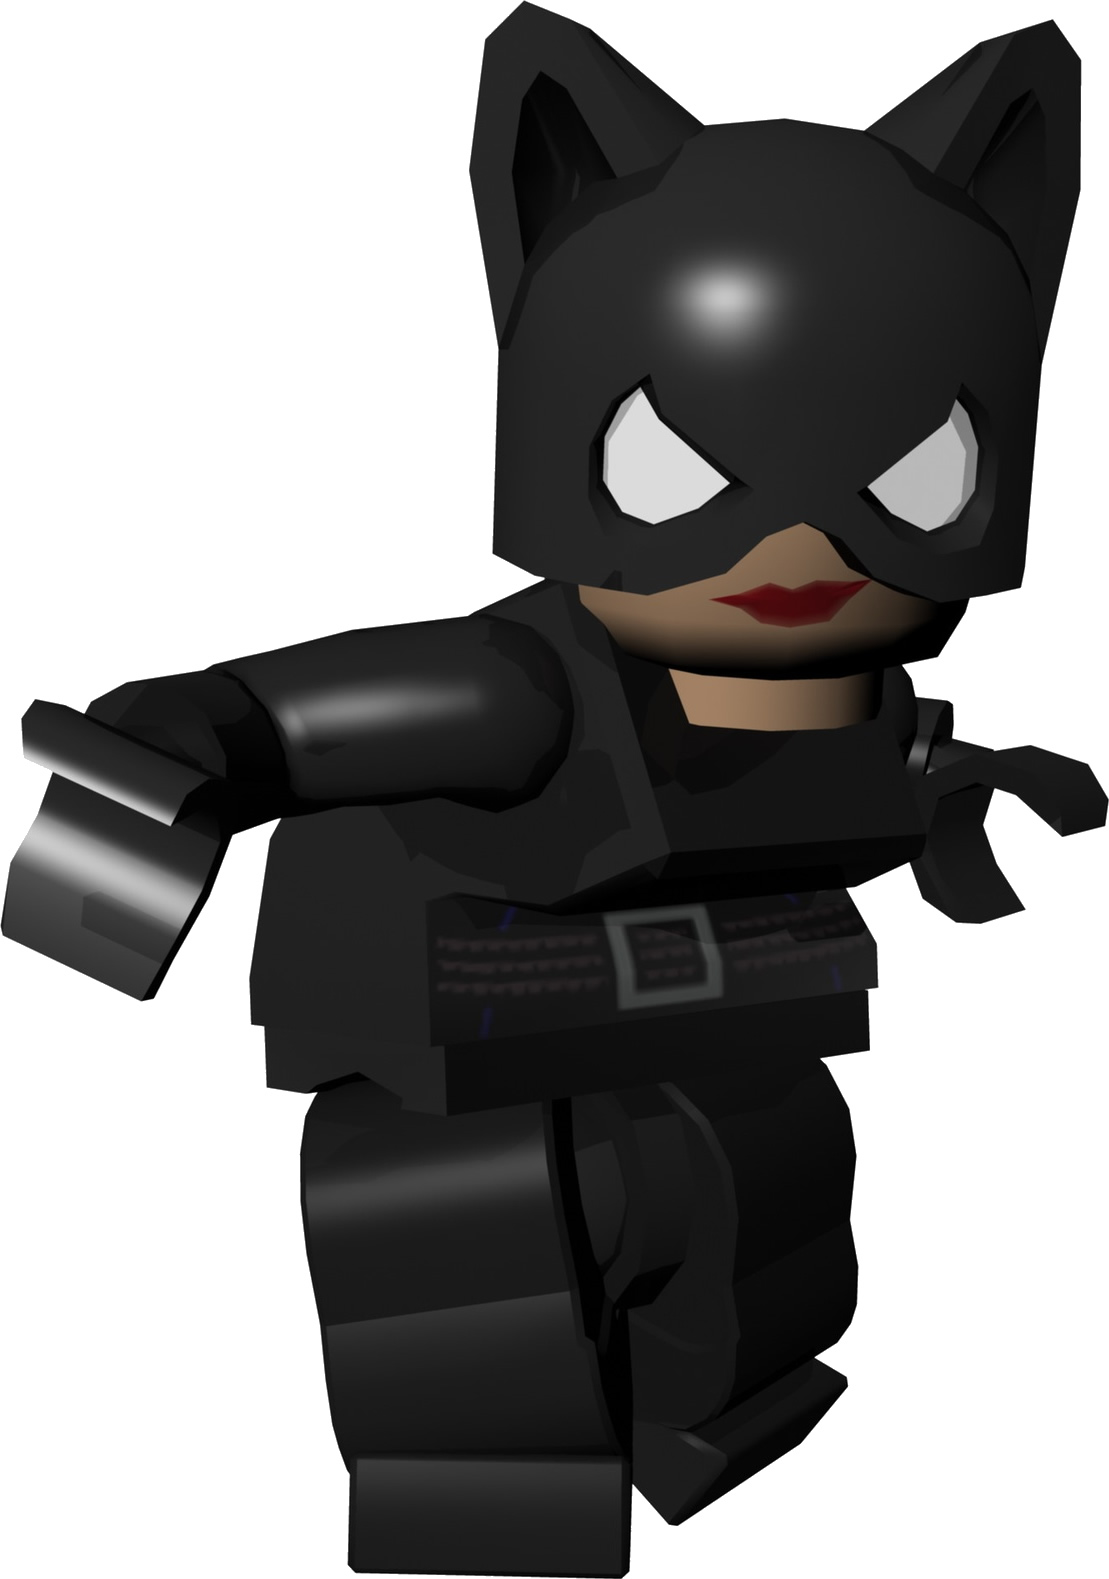 Catwoman clipart lego Catwoman Toptenz lego catwoman net